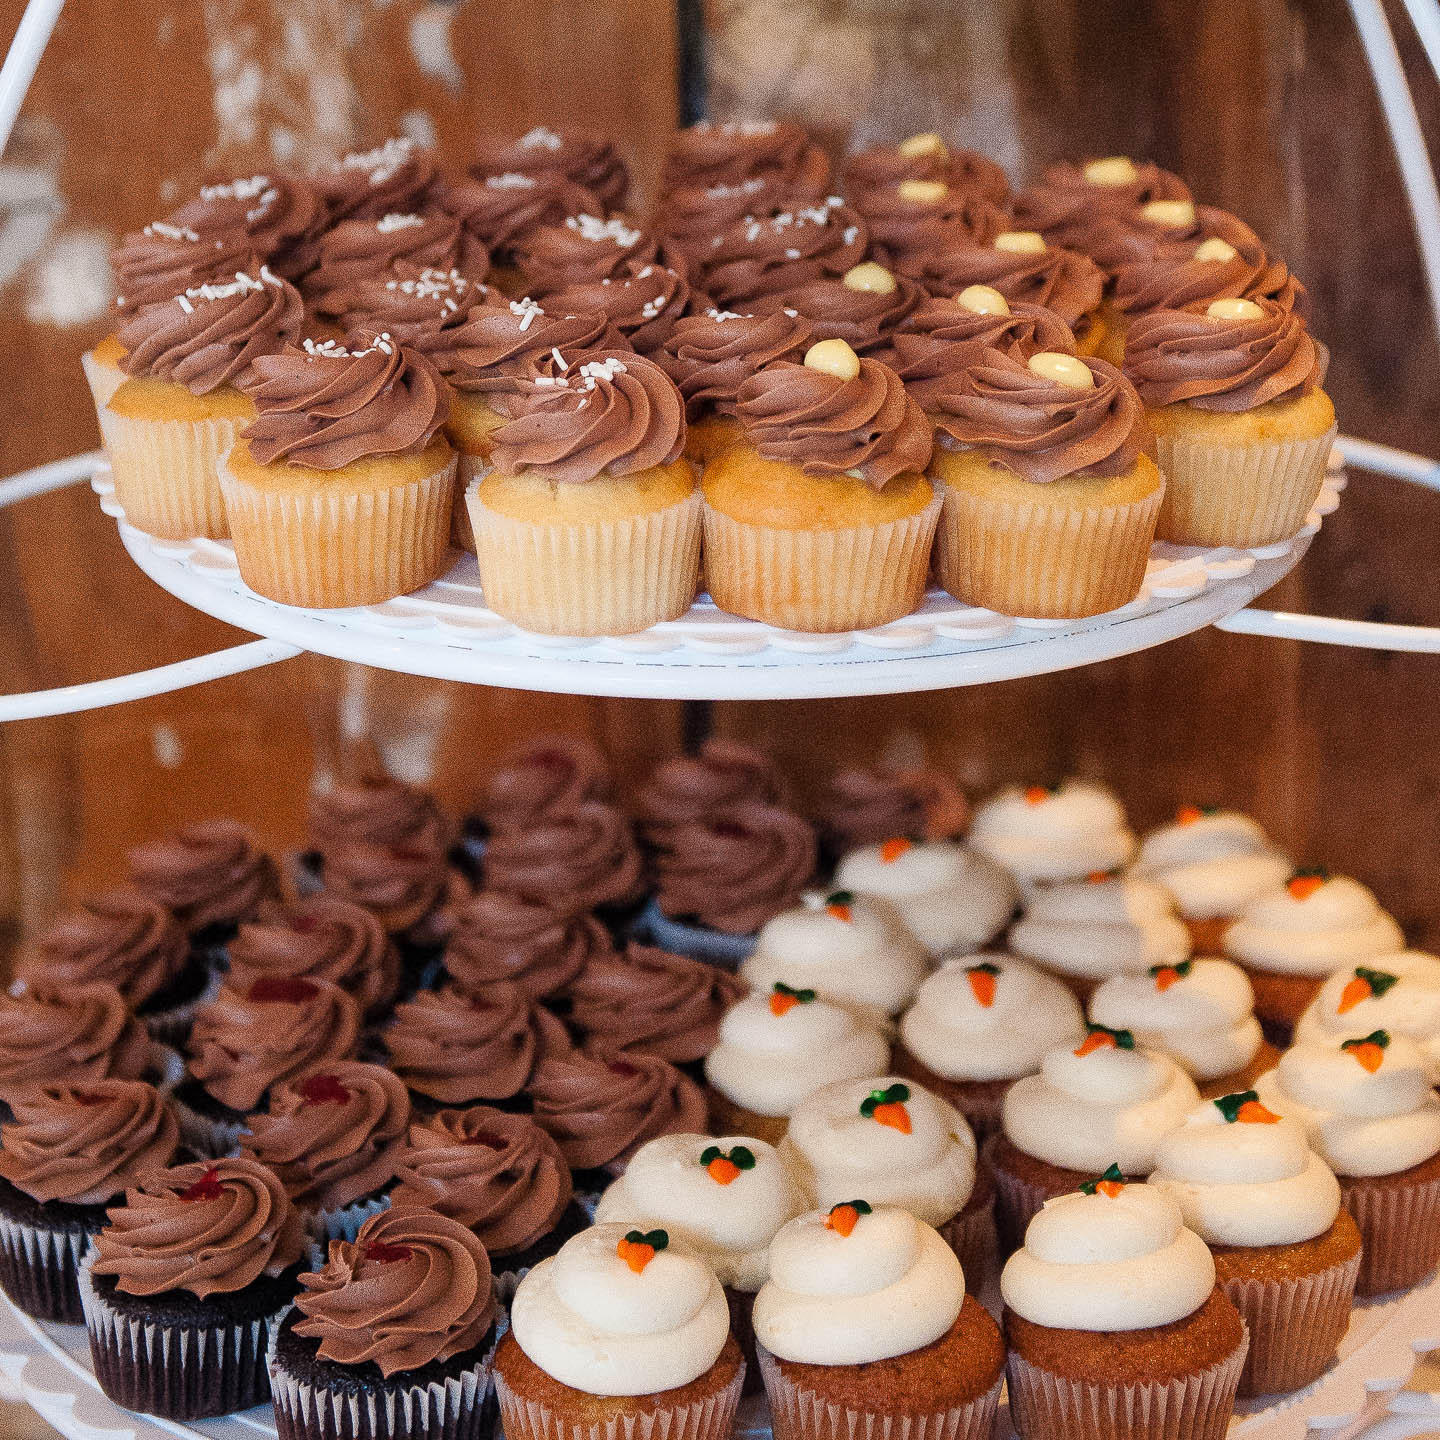 An assortment of cupcakses on a rack at a wedding